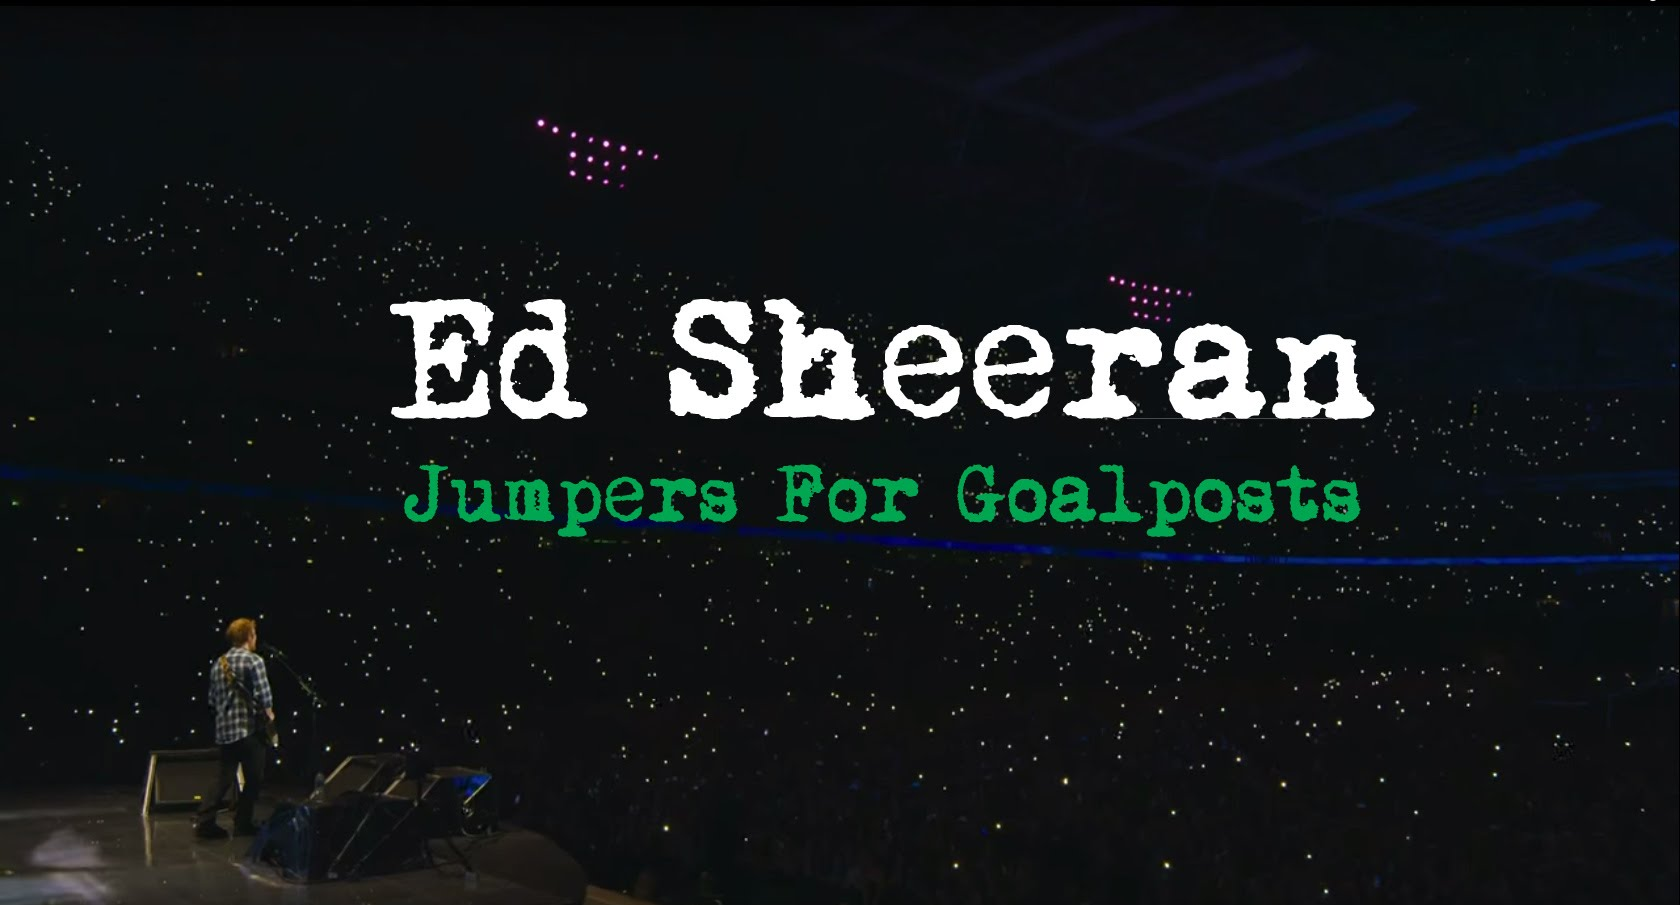 Ed Sheeran gets comfortable with stardom in concert film 'Jumpers for Goalposts'